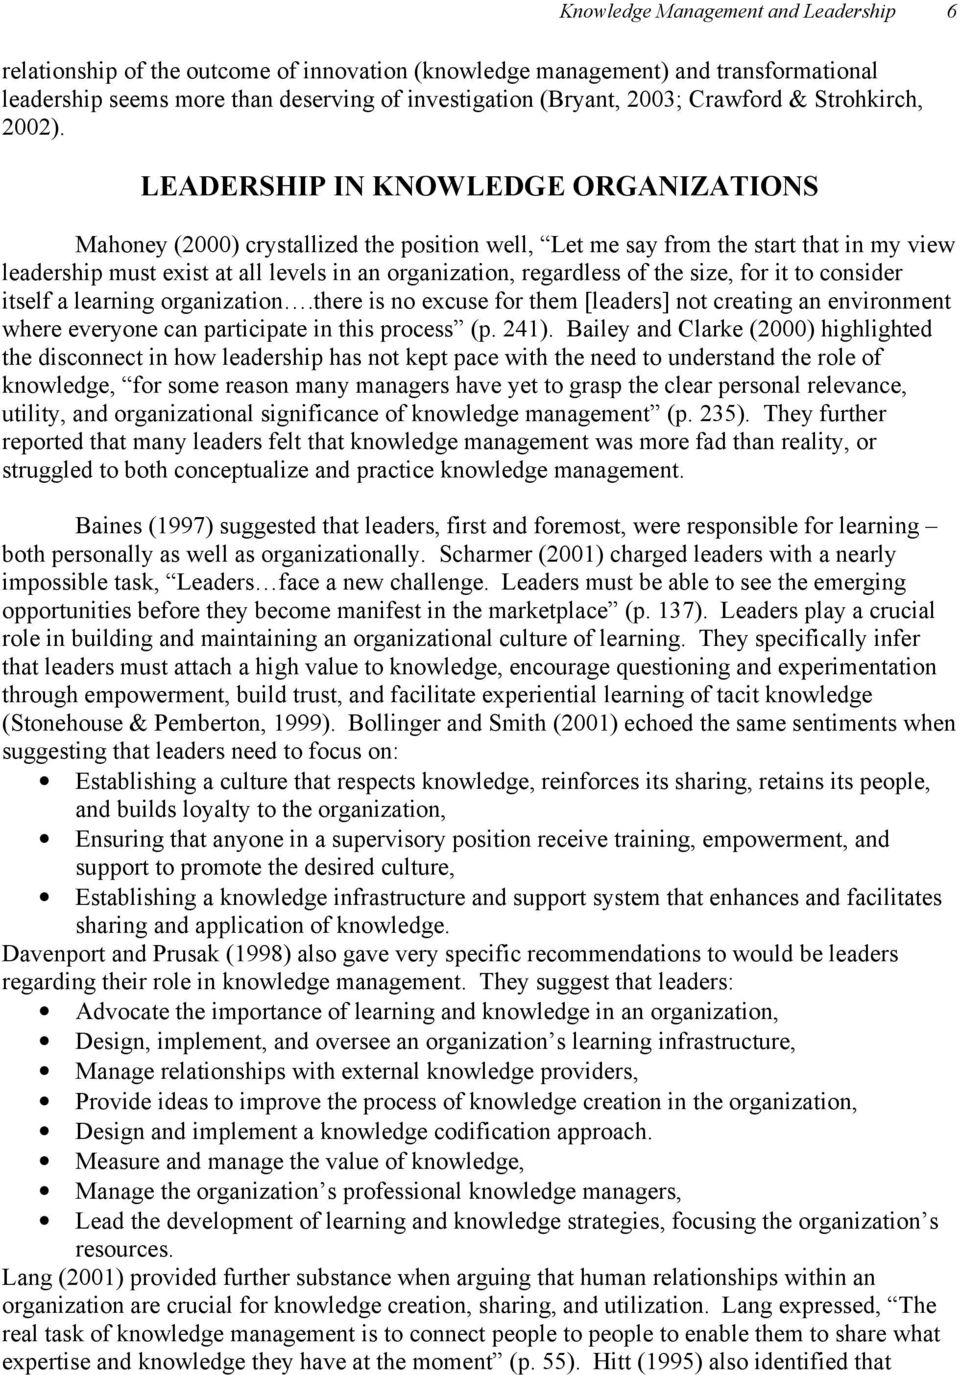 LEADERSHIP IN KNOWLEDGE ORGANIZATIONS Mahoney (2000) crystallized the position well, Let me say from the start that in my view leadership must exist at all levels in an organization, regardless of